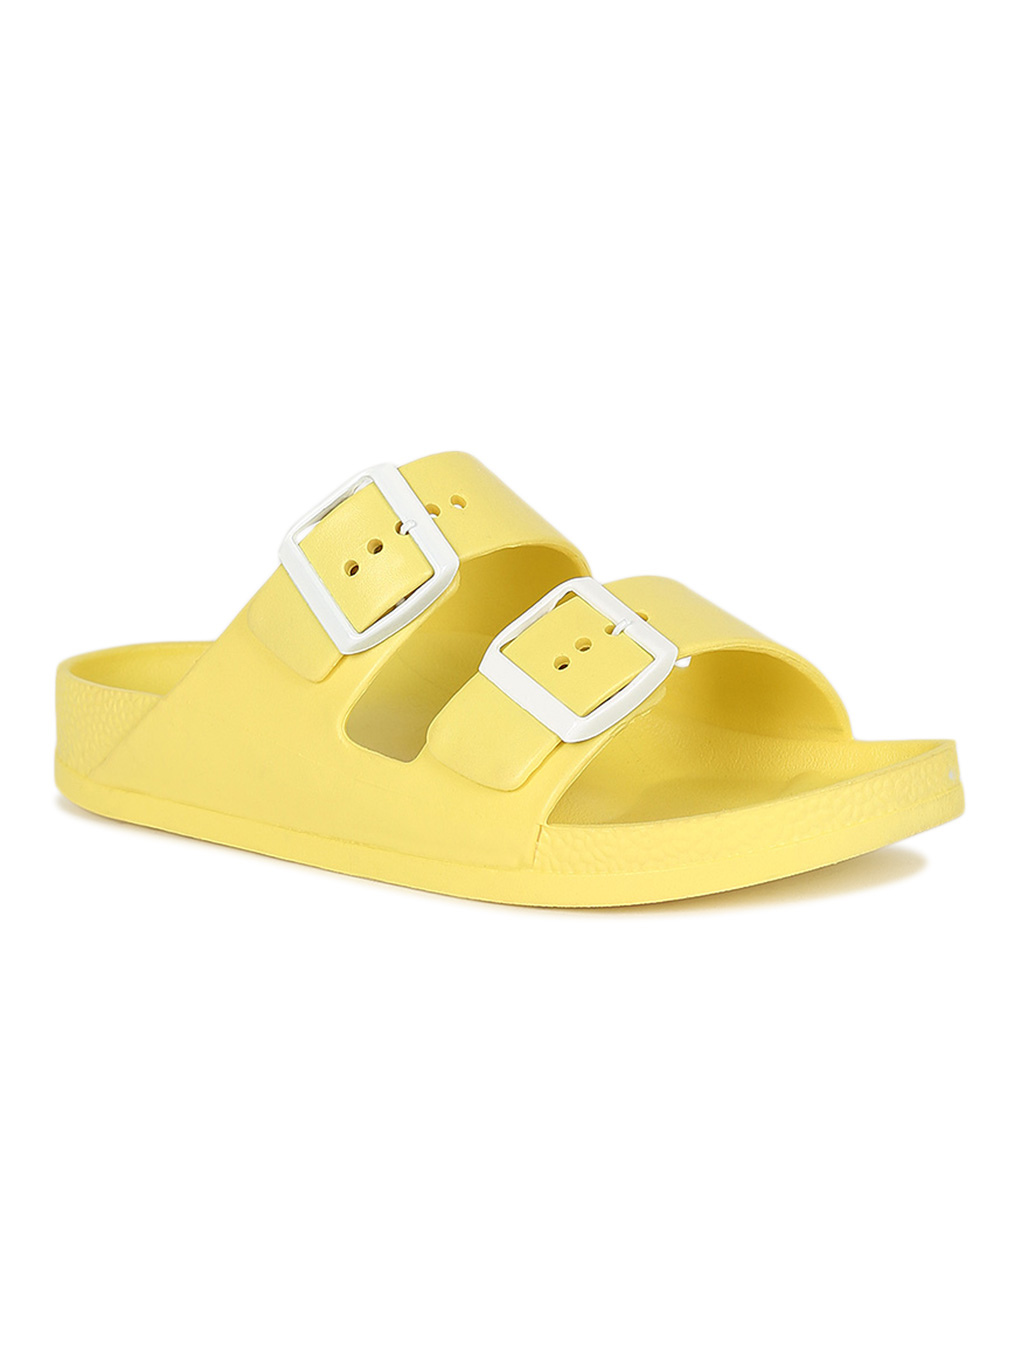 EVA Adjustable Double Buckle Slip-on Flat Slides with Arch Support Lightweight and Waterproof SEVEGO Women/'s Comfort Footbed Sandals